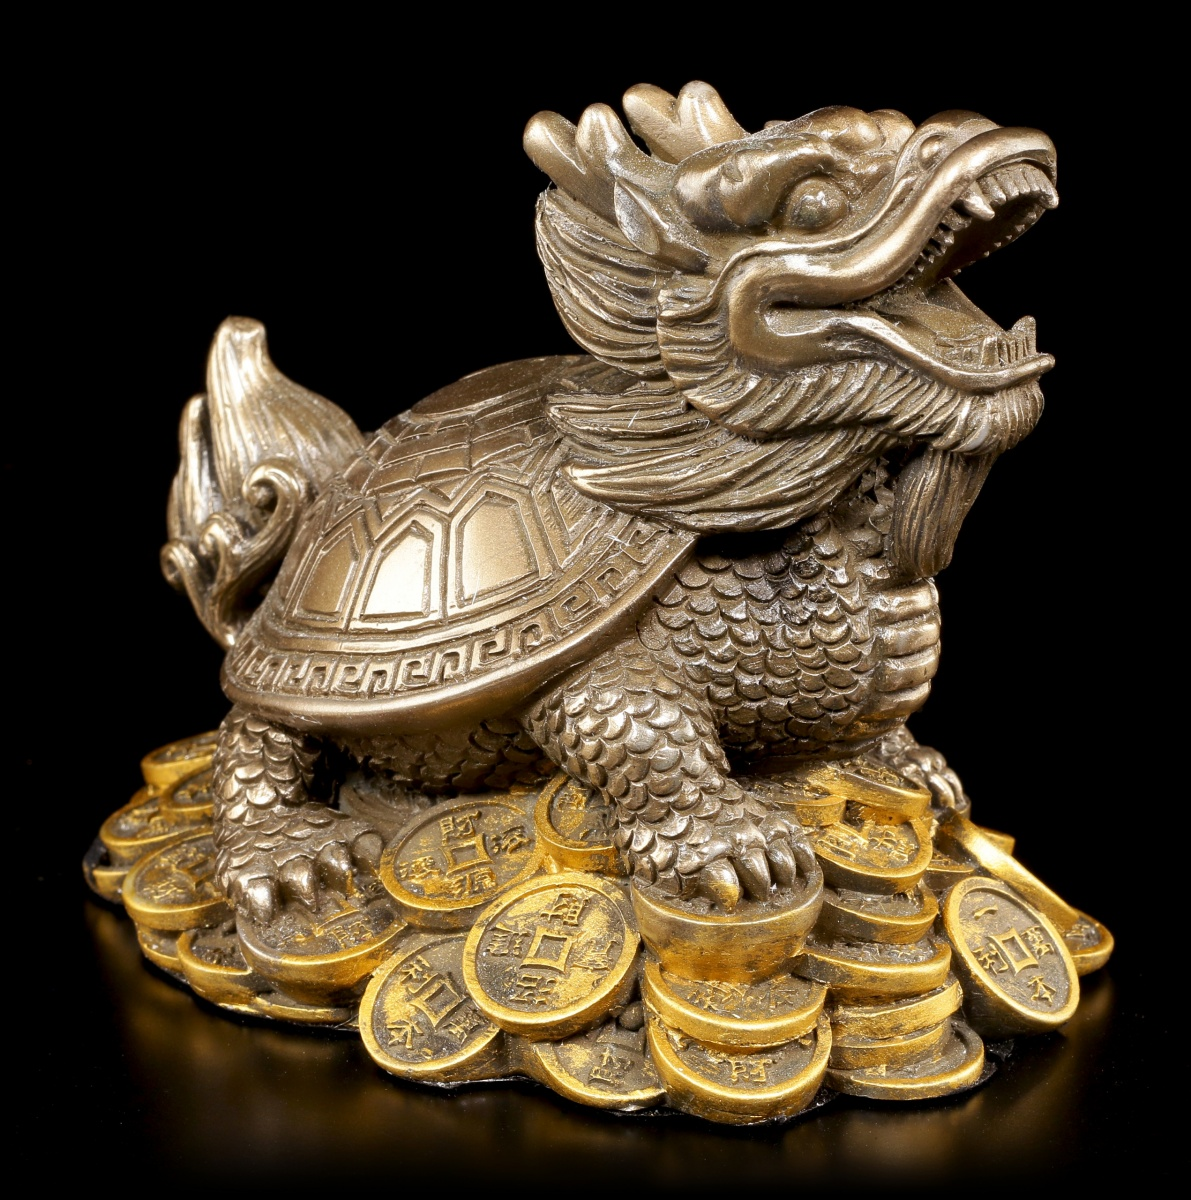 feng shui figurine dragons tortue argent porte bonheur cadeau bouddha ebay. Black Bedroom Furniture Sets. Home Design Ideas